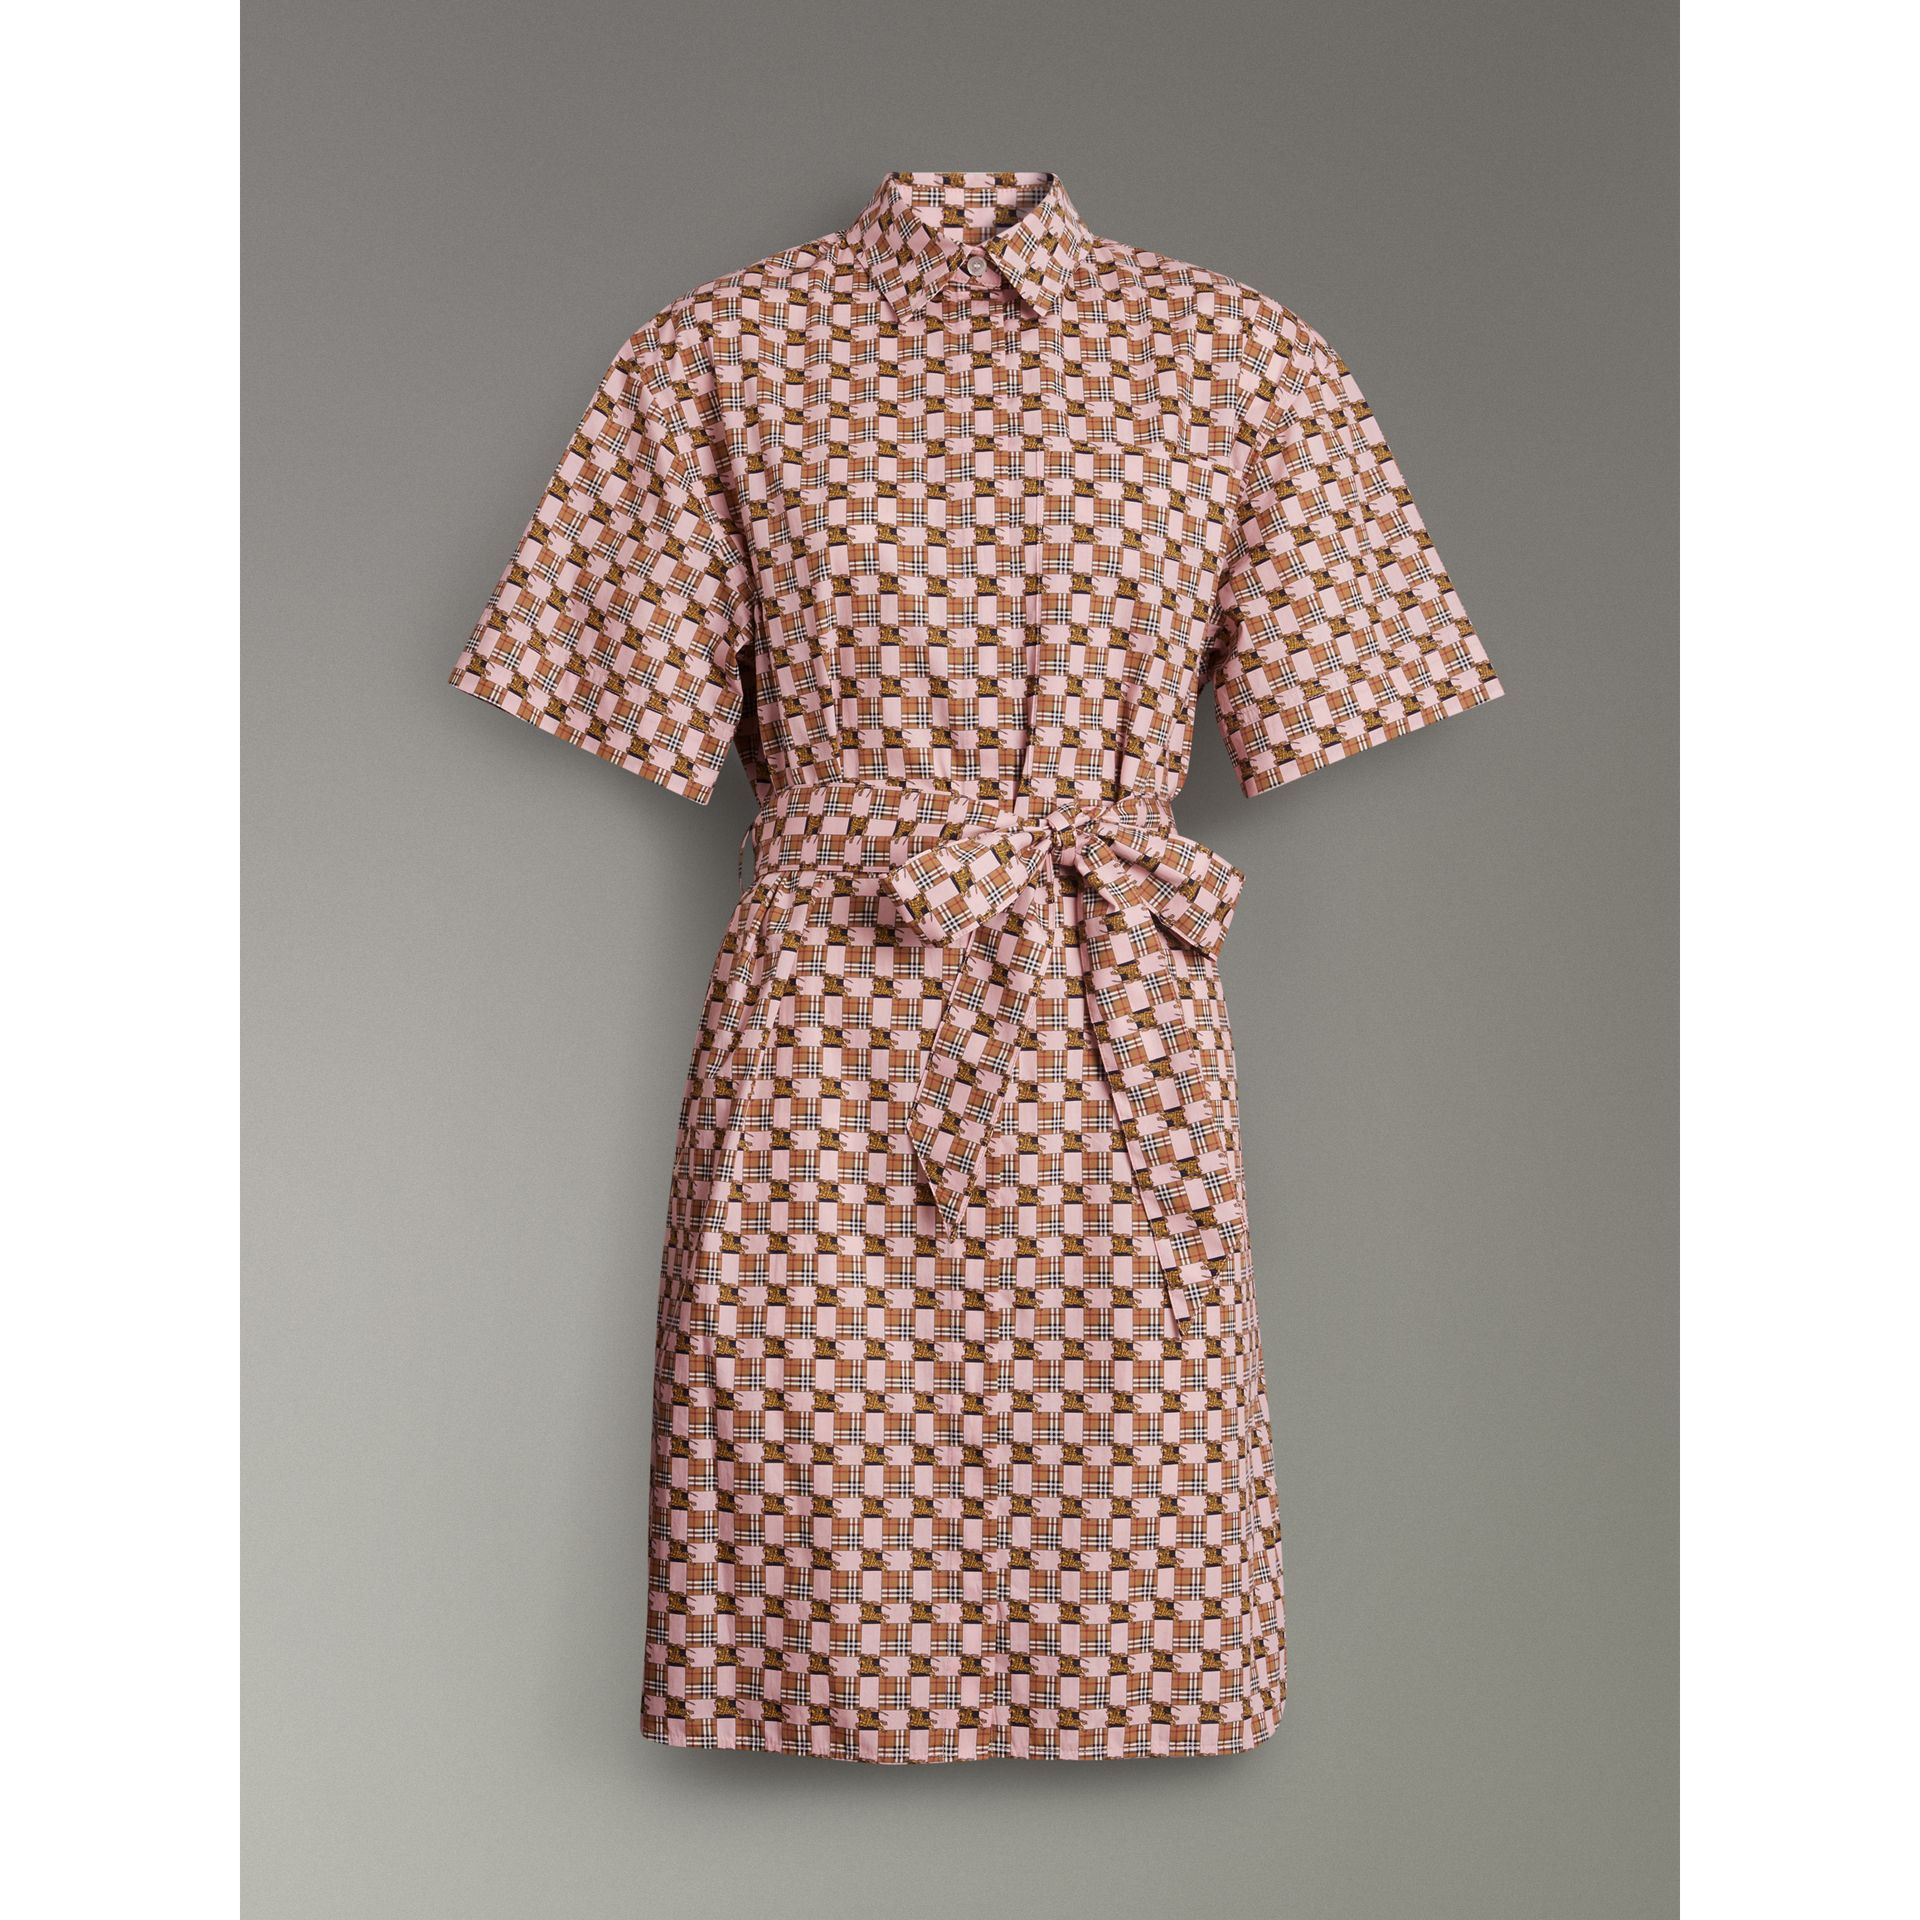 Tiled Archive Print Cotton Shirt Dress in Pink - Women | Burberry United Kingdom - gallery image 3